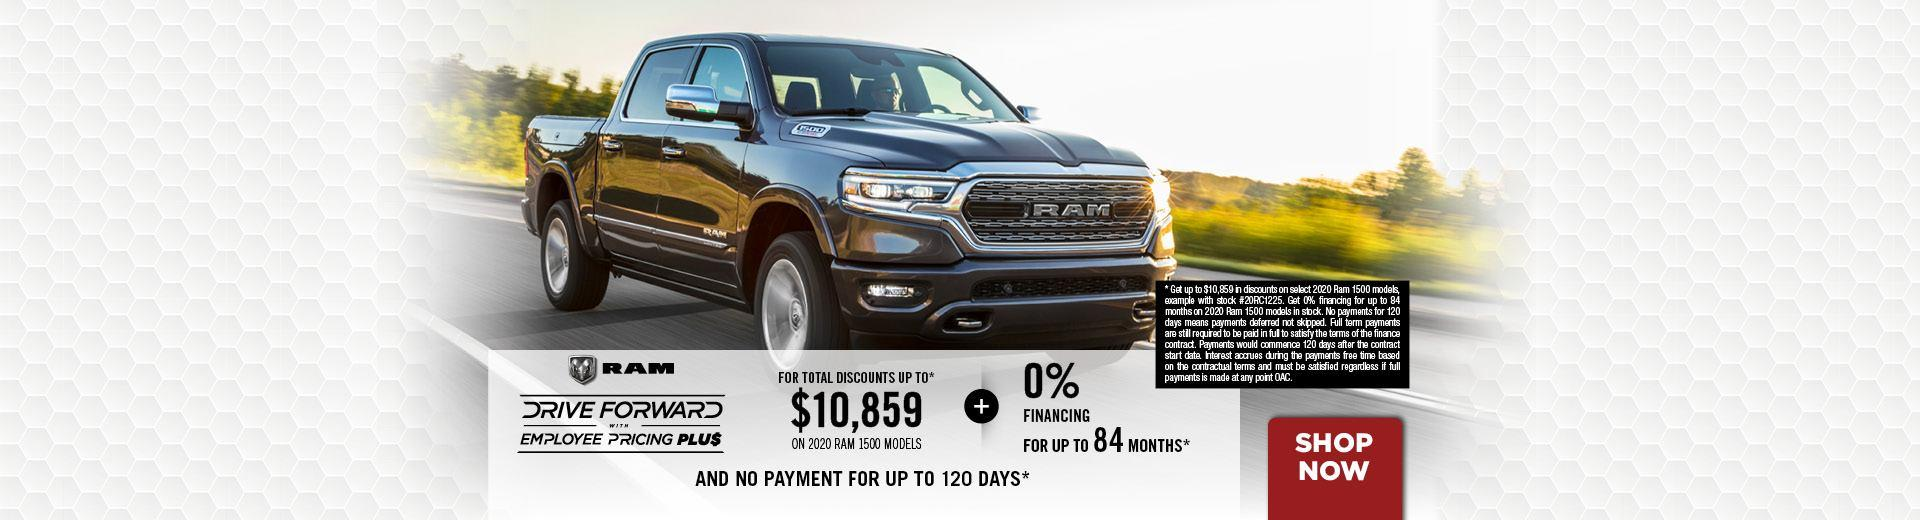 0% financing up to 84 months available on all 2020 Ram 1500 (DT) models